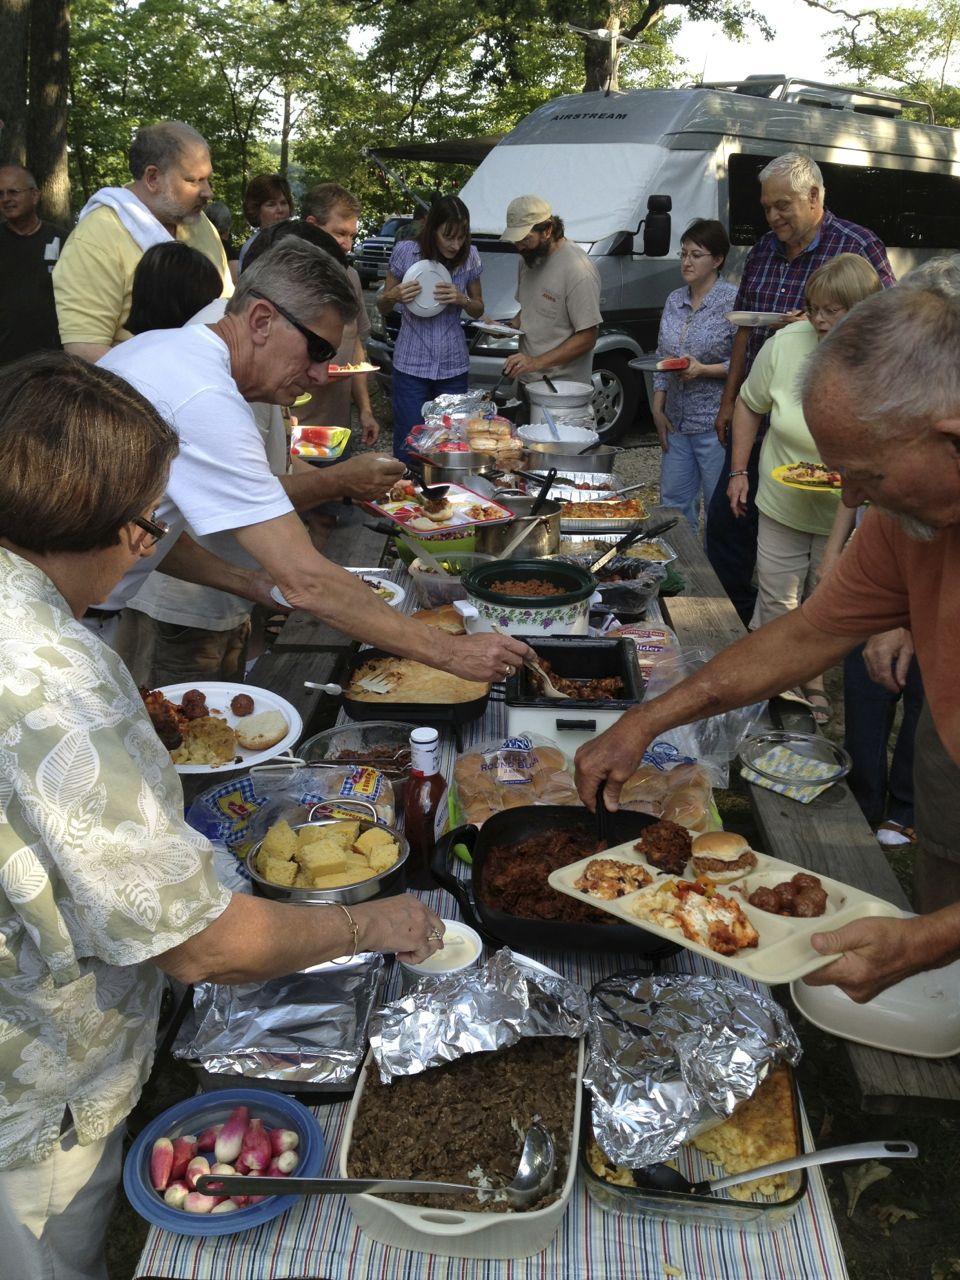 Click image for larger version  Name:Moraine View Potluck.jpg Views:177 Size:269.7 KB ID:182262